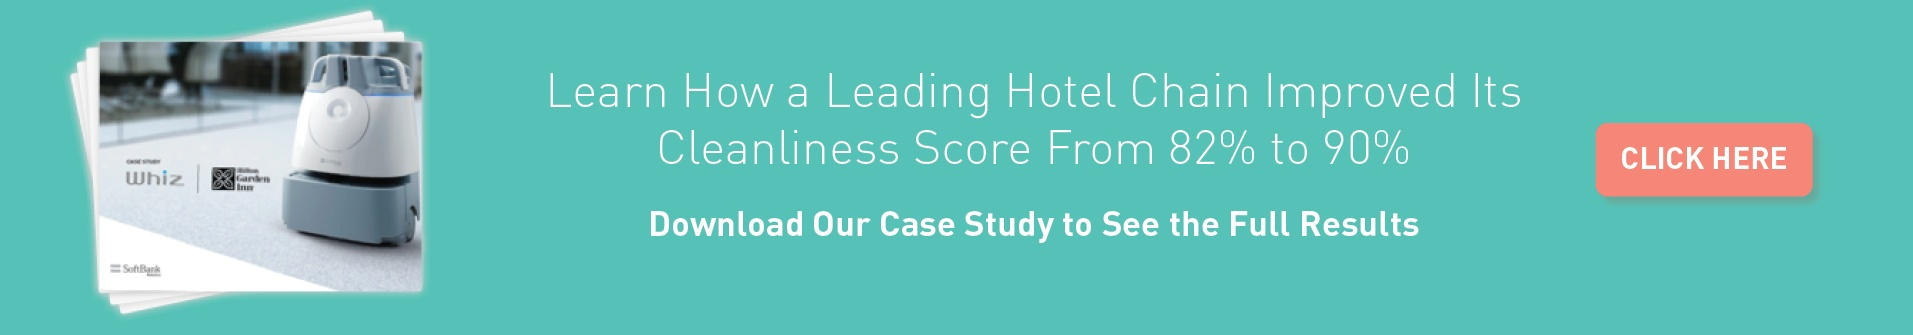 Tristar Case study video (Hilton Garden Inn)